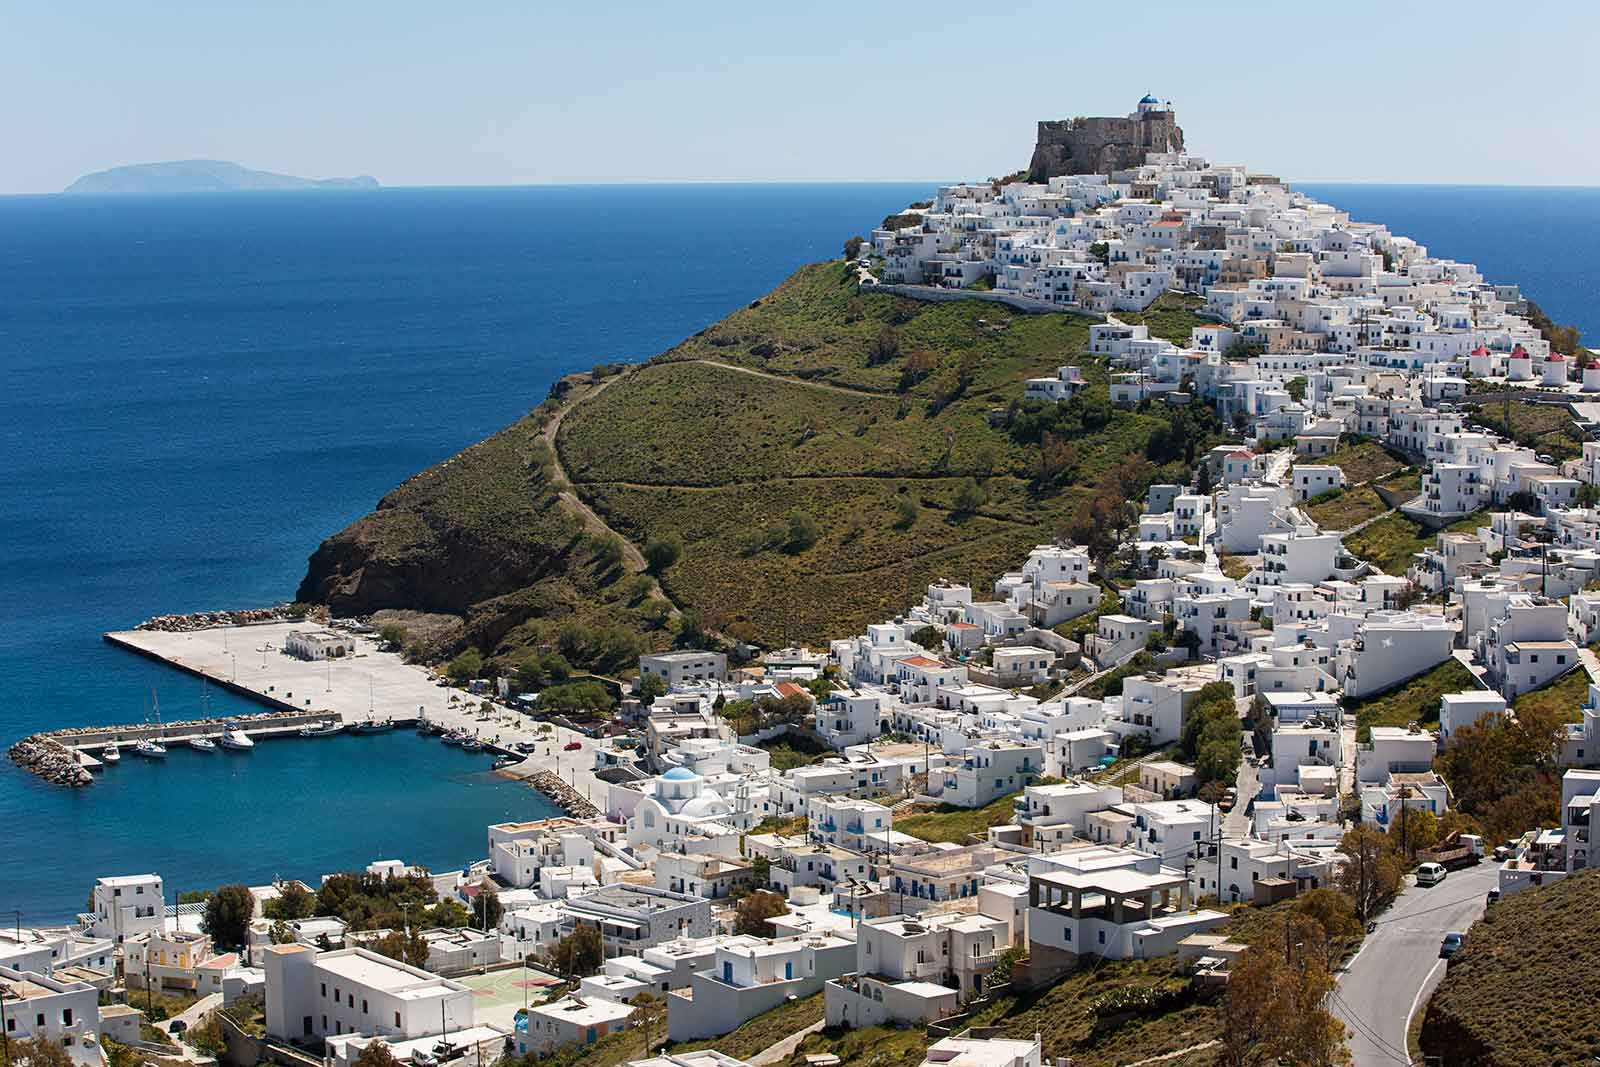 Chora is the capital of Astypalea, built on the hill slope. On top is a Venetian castle situated, known as the Querini Castle.